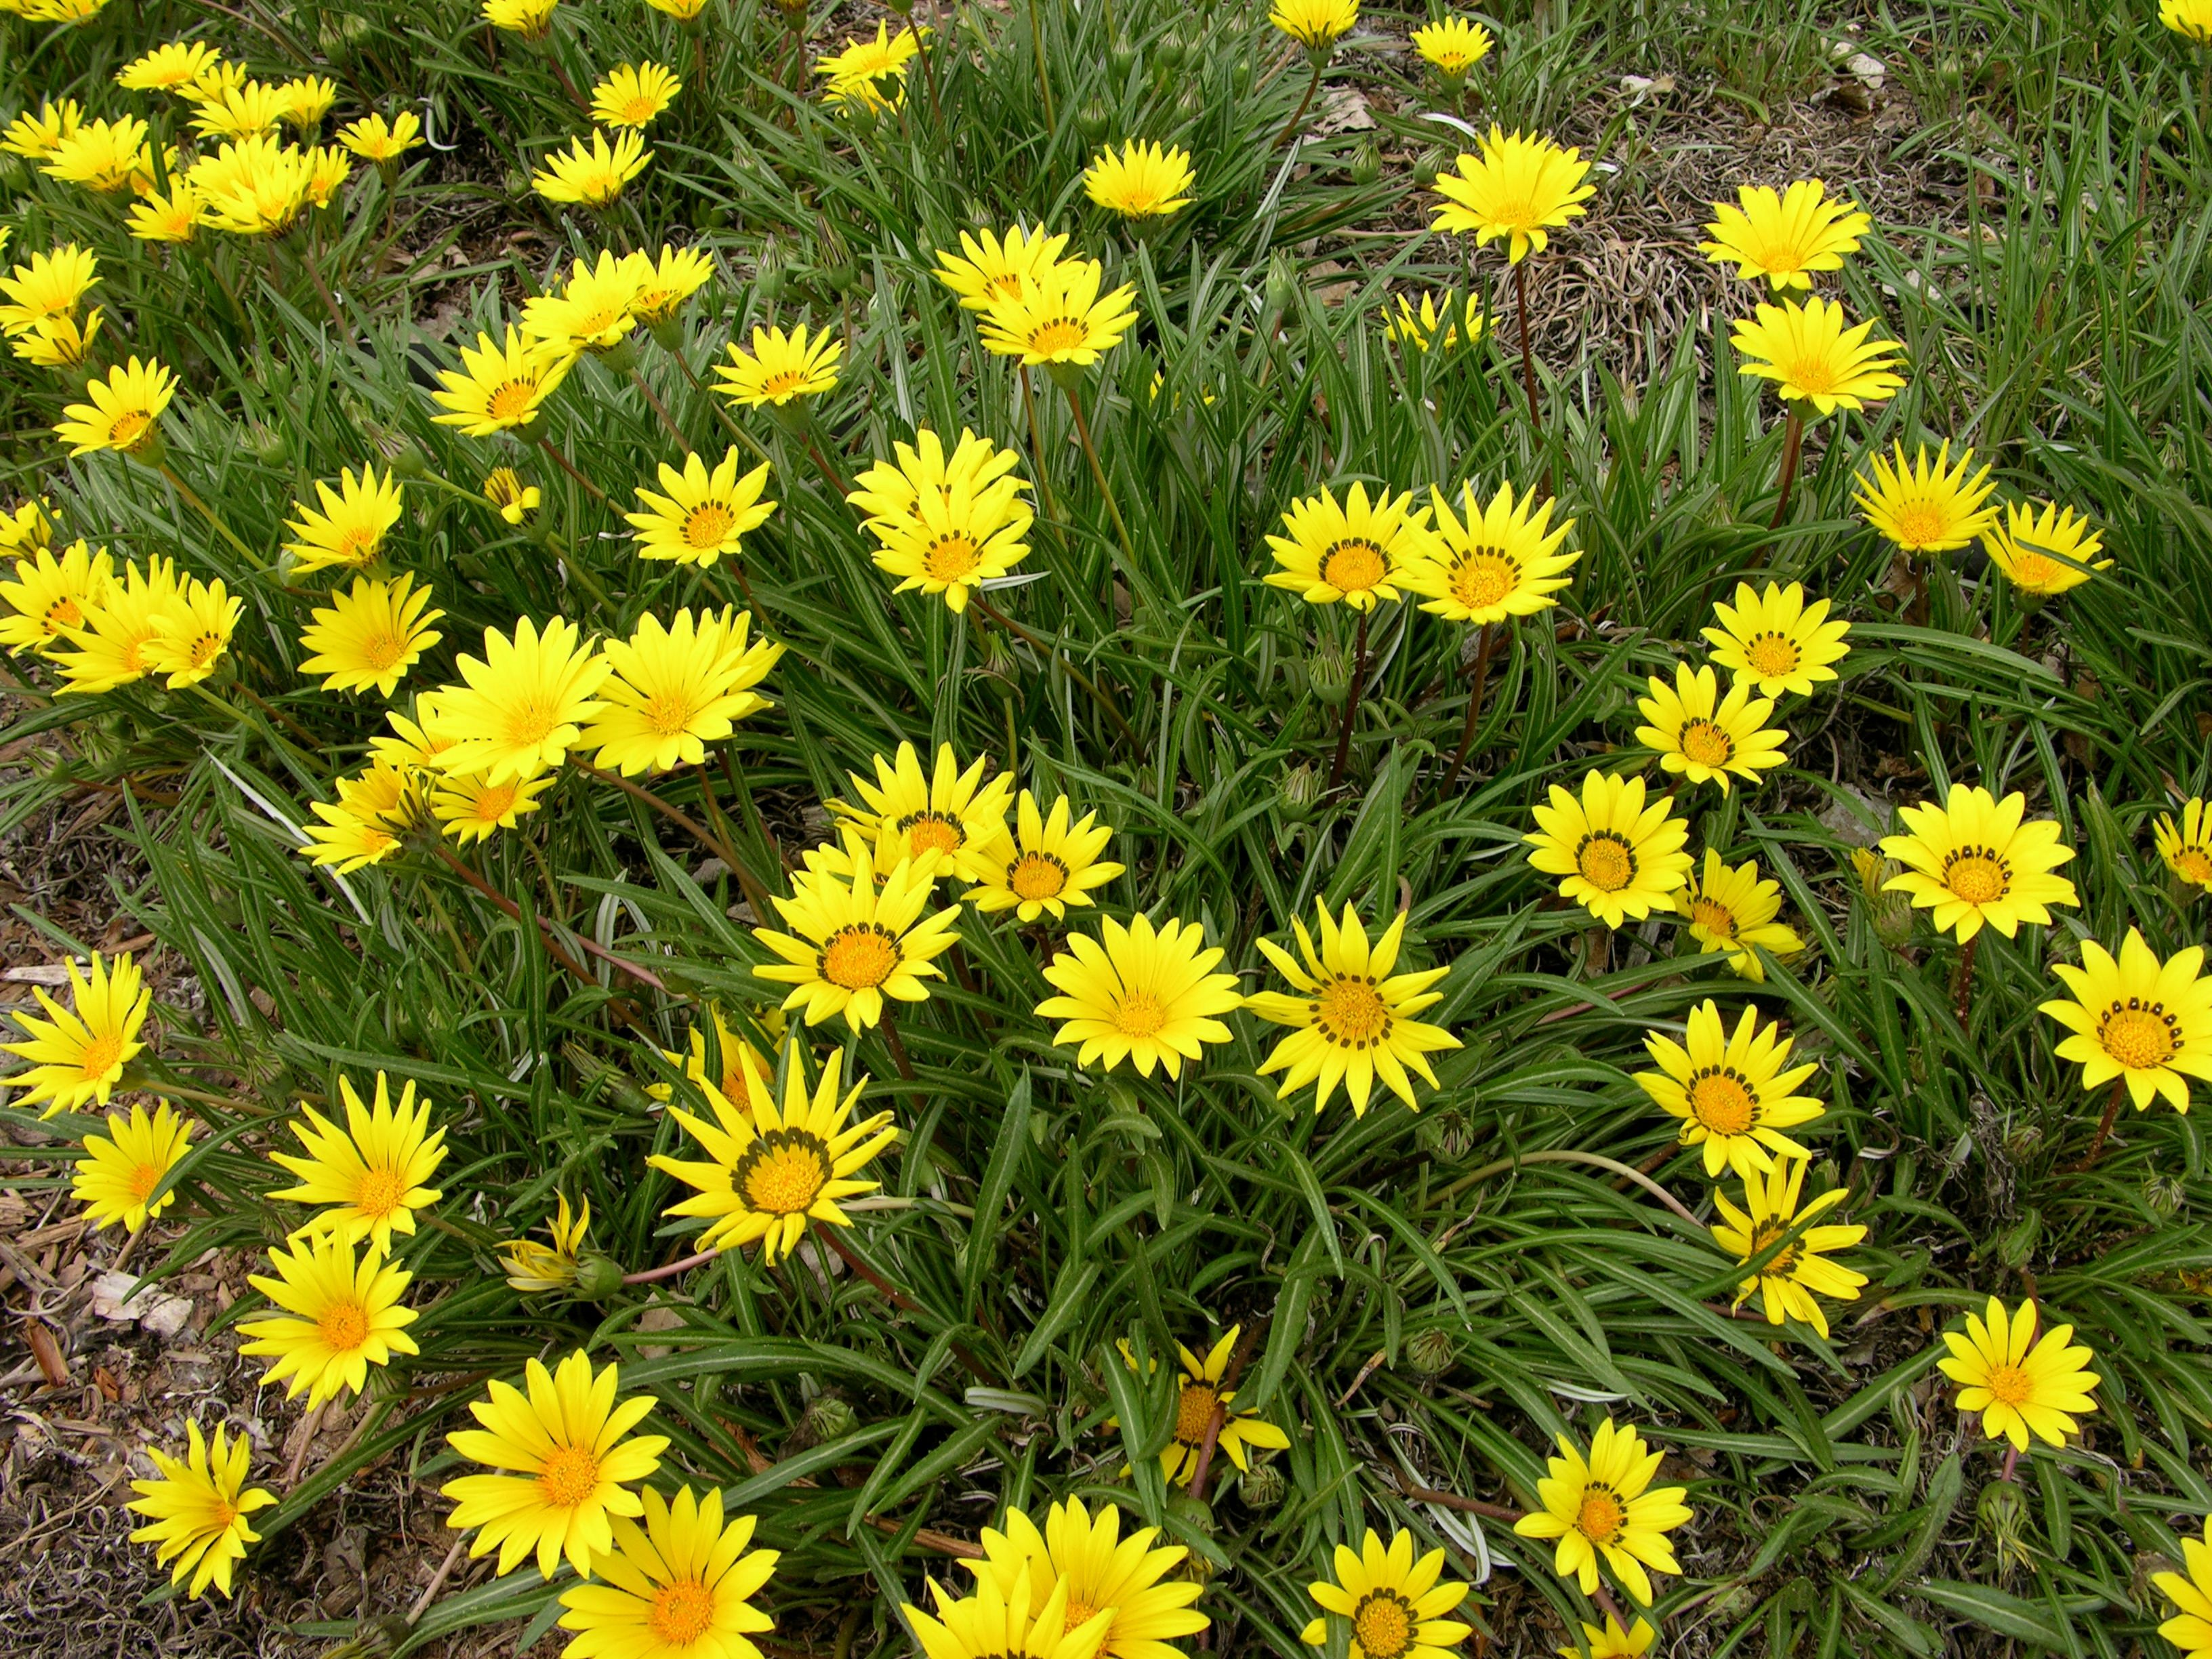 How to grow yellow daisies in your garden 10 charming ideas shop related products dhlflorist Choice Image